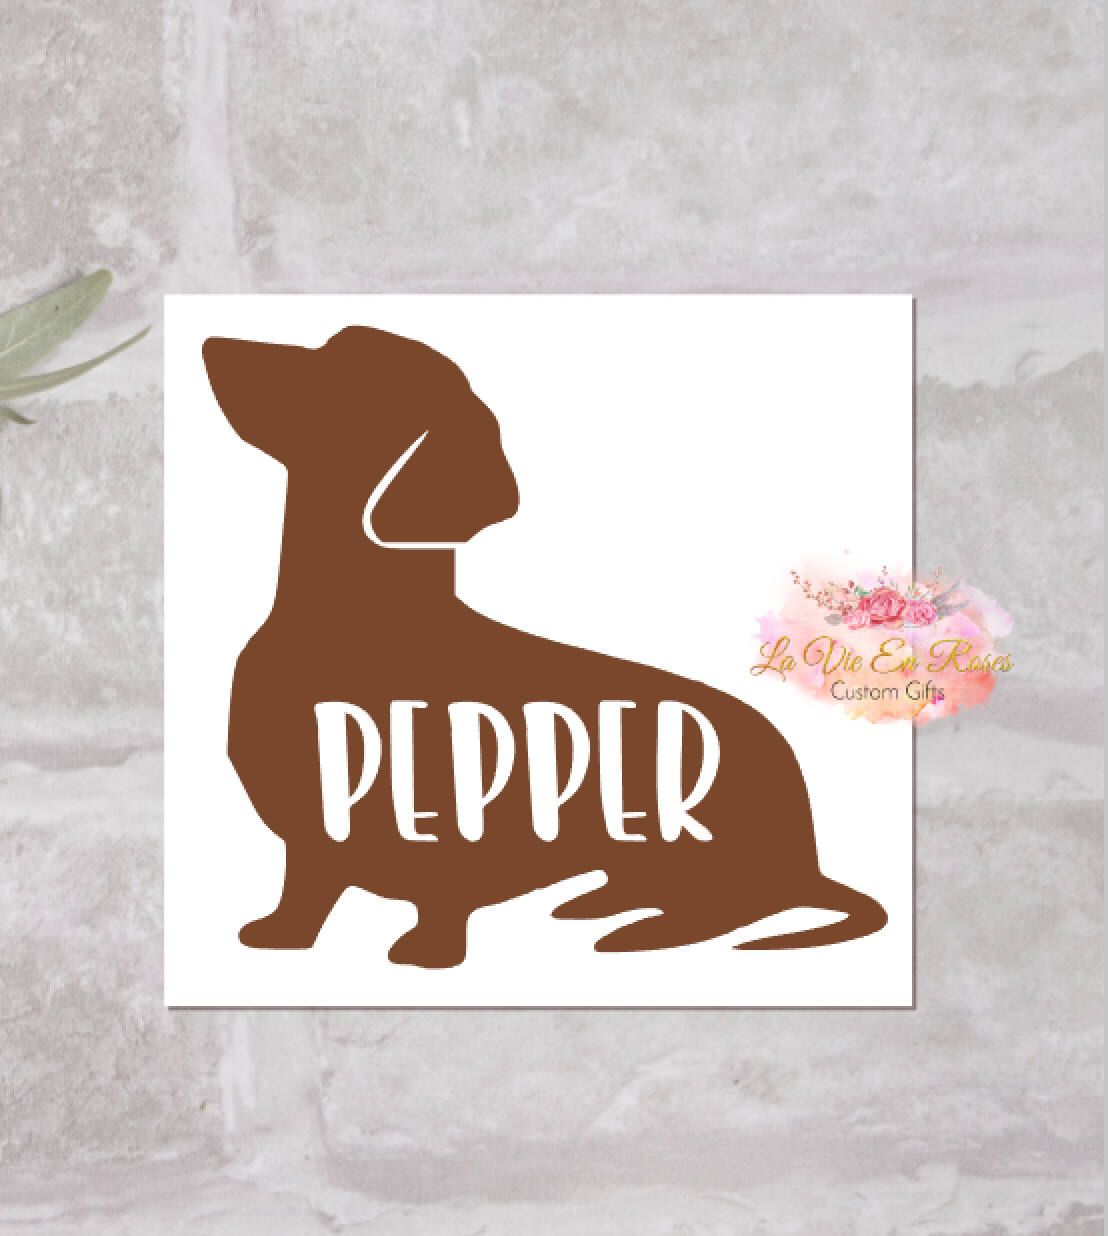 Dachshund Decal Weenie Dog Decal Custom Name Decal Etsy Decals For Yeti Cups Dog Decals Cup Decal [ 1236 x 1108 Pixel ]